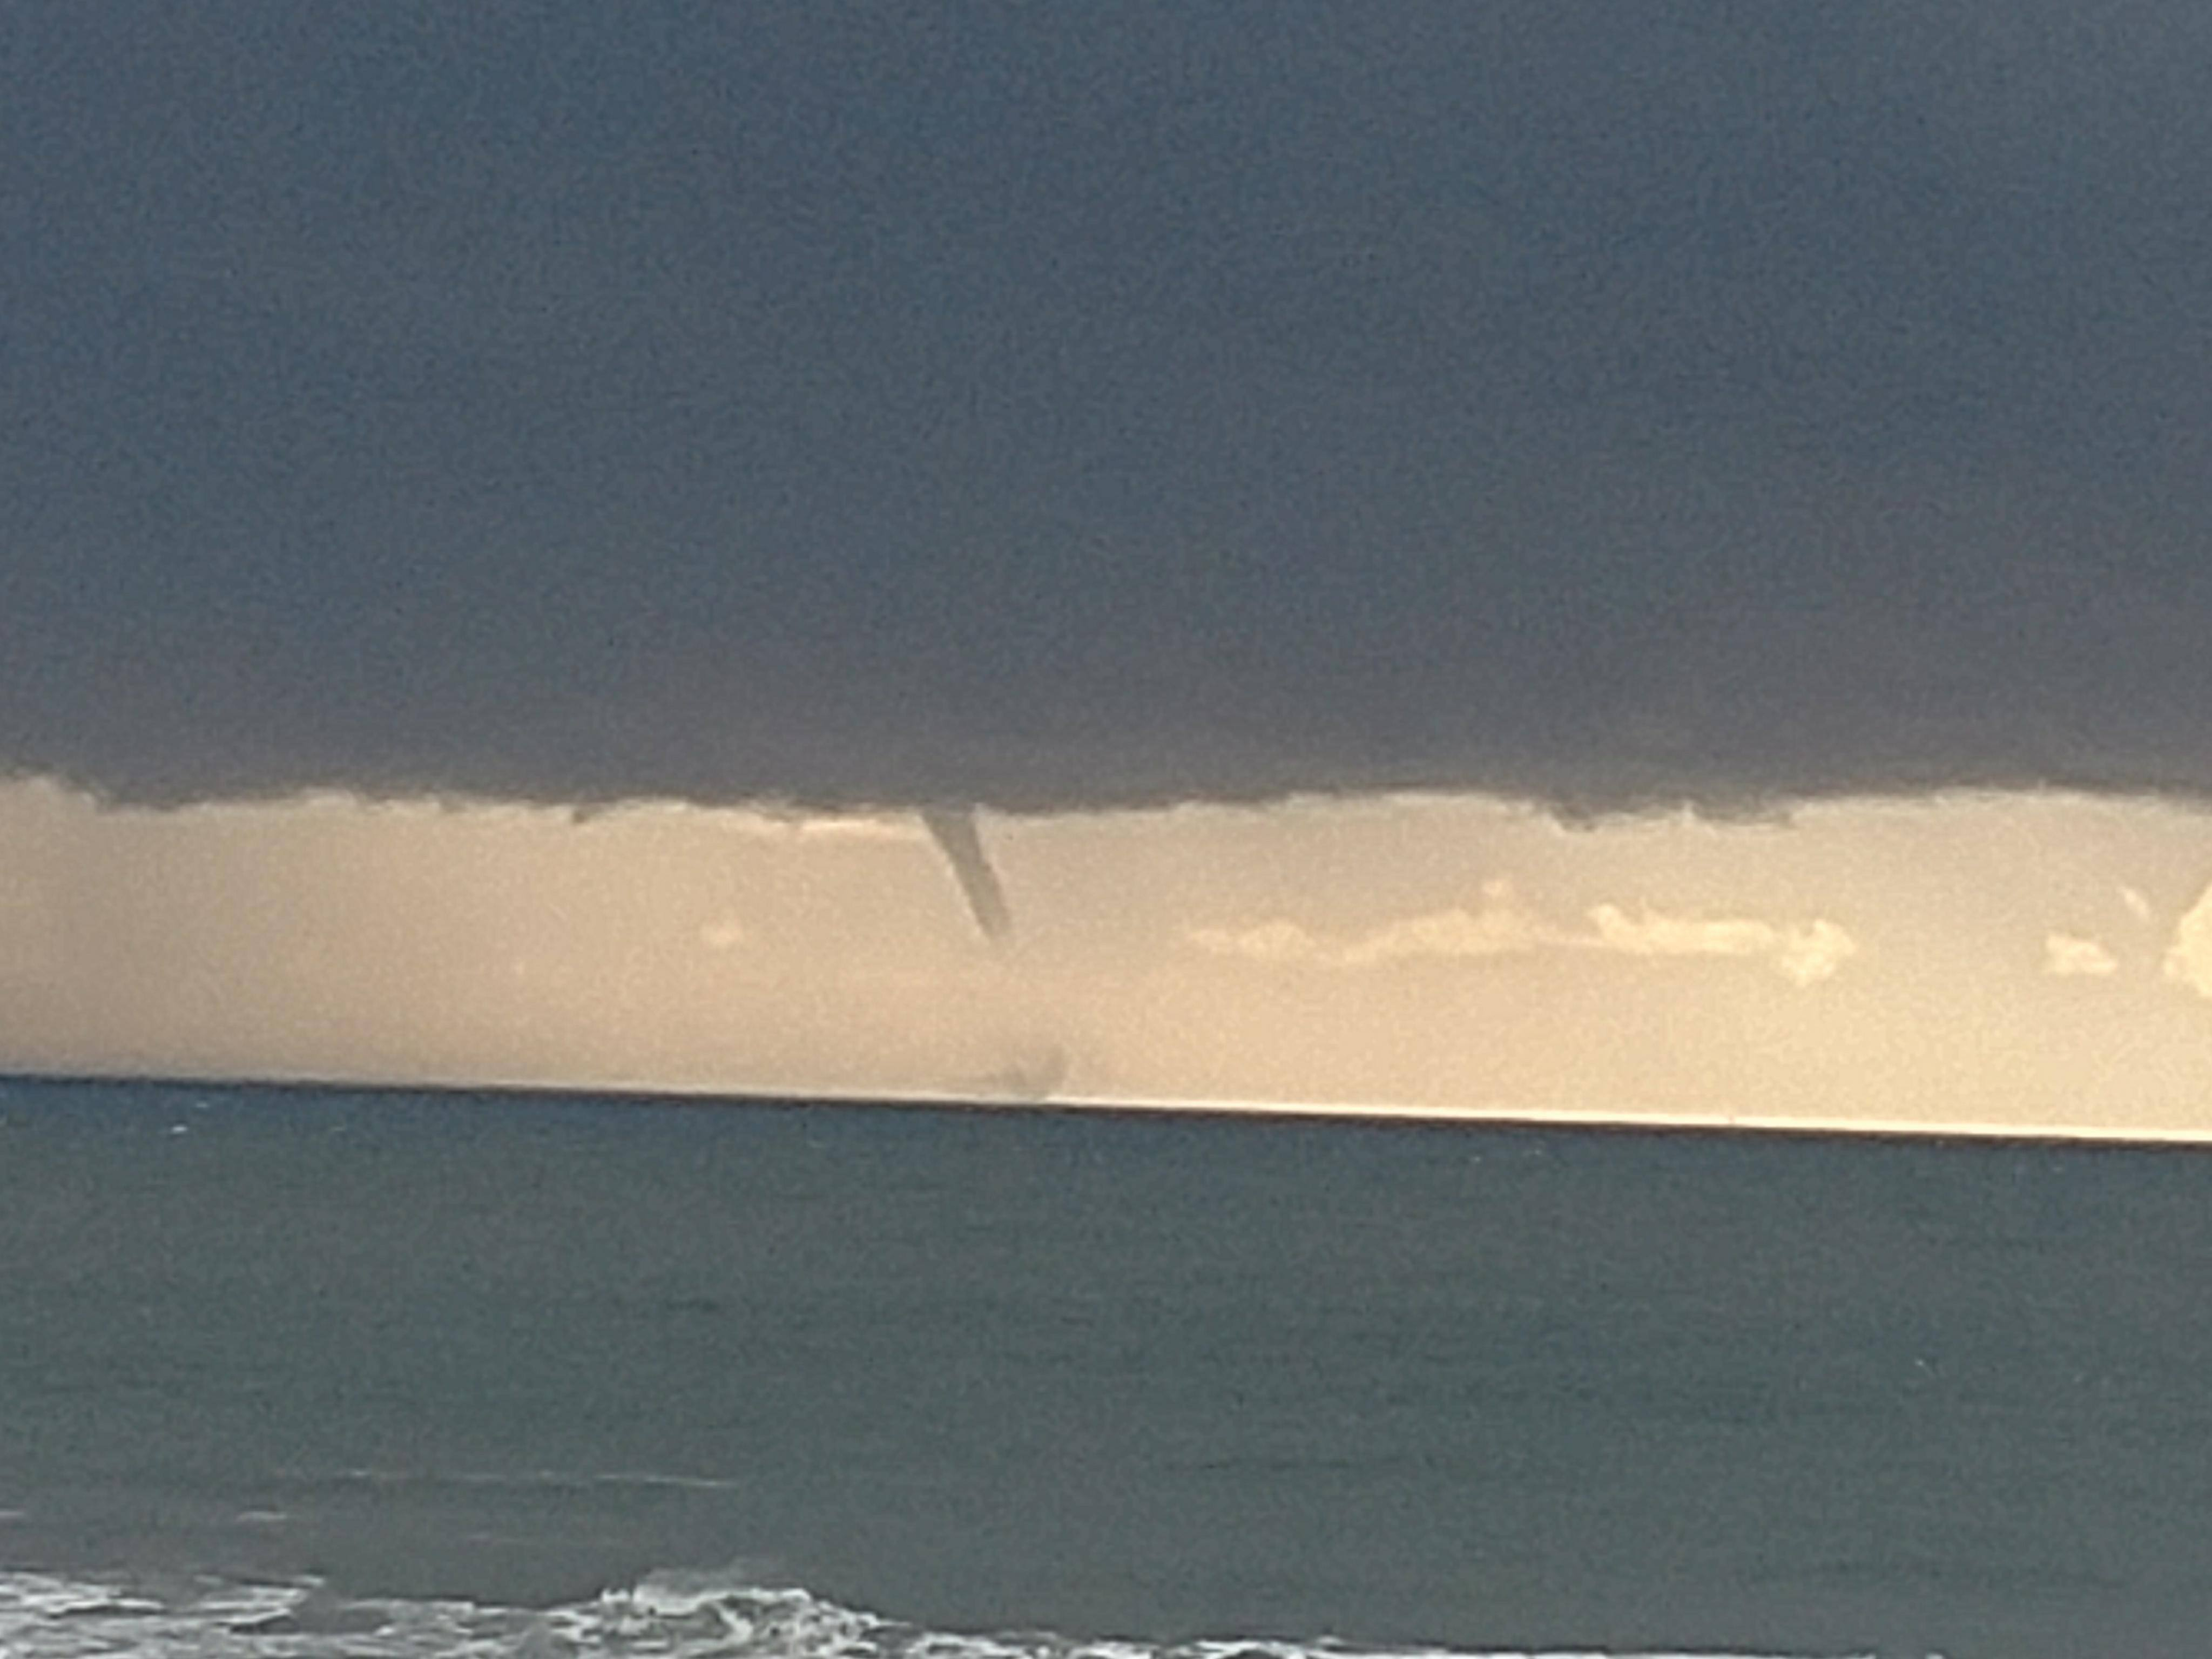 Two waterspouts were spoted off Ocean Shores on Thursday afternoon. (Photo: Carmen Lane)<p></p>